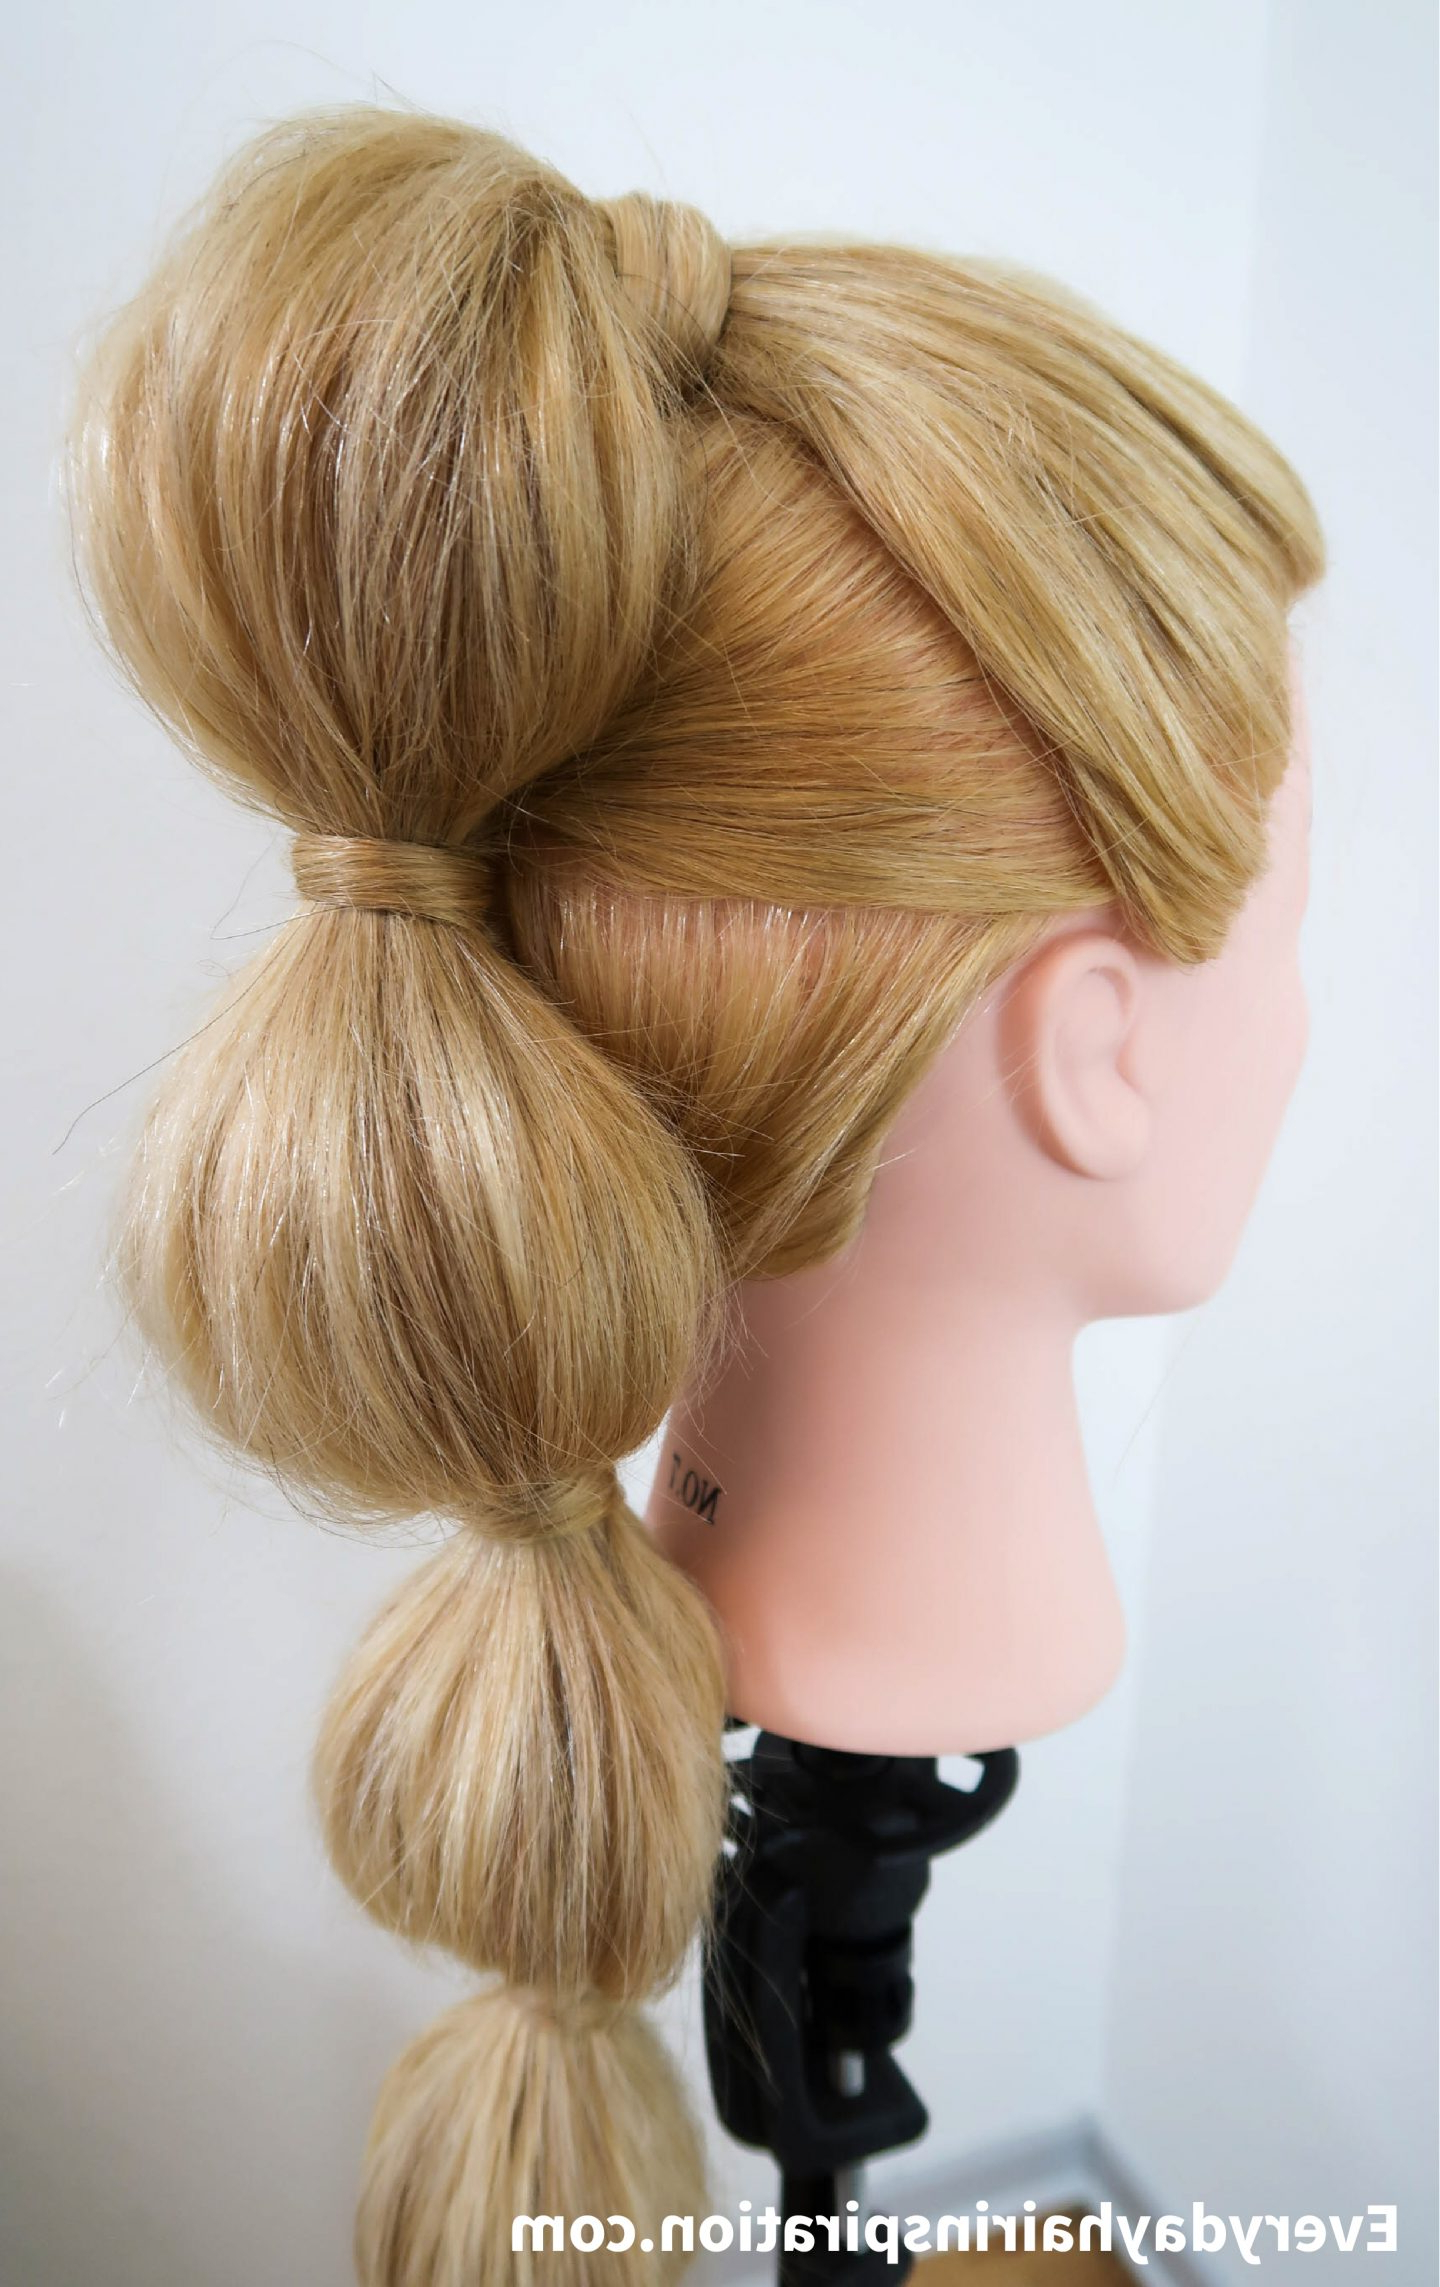 Bubble Ponytail Stepstep – Everyday Hair Inspiration Intended For Most Recent Braided Bubble Ponytail Hairstyles (View 8 of 20)